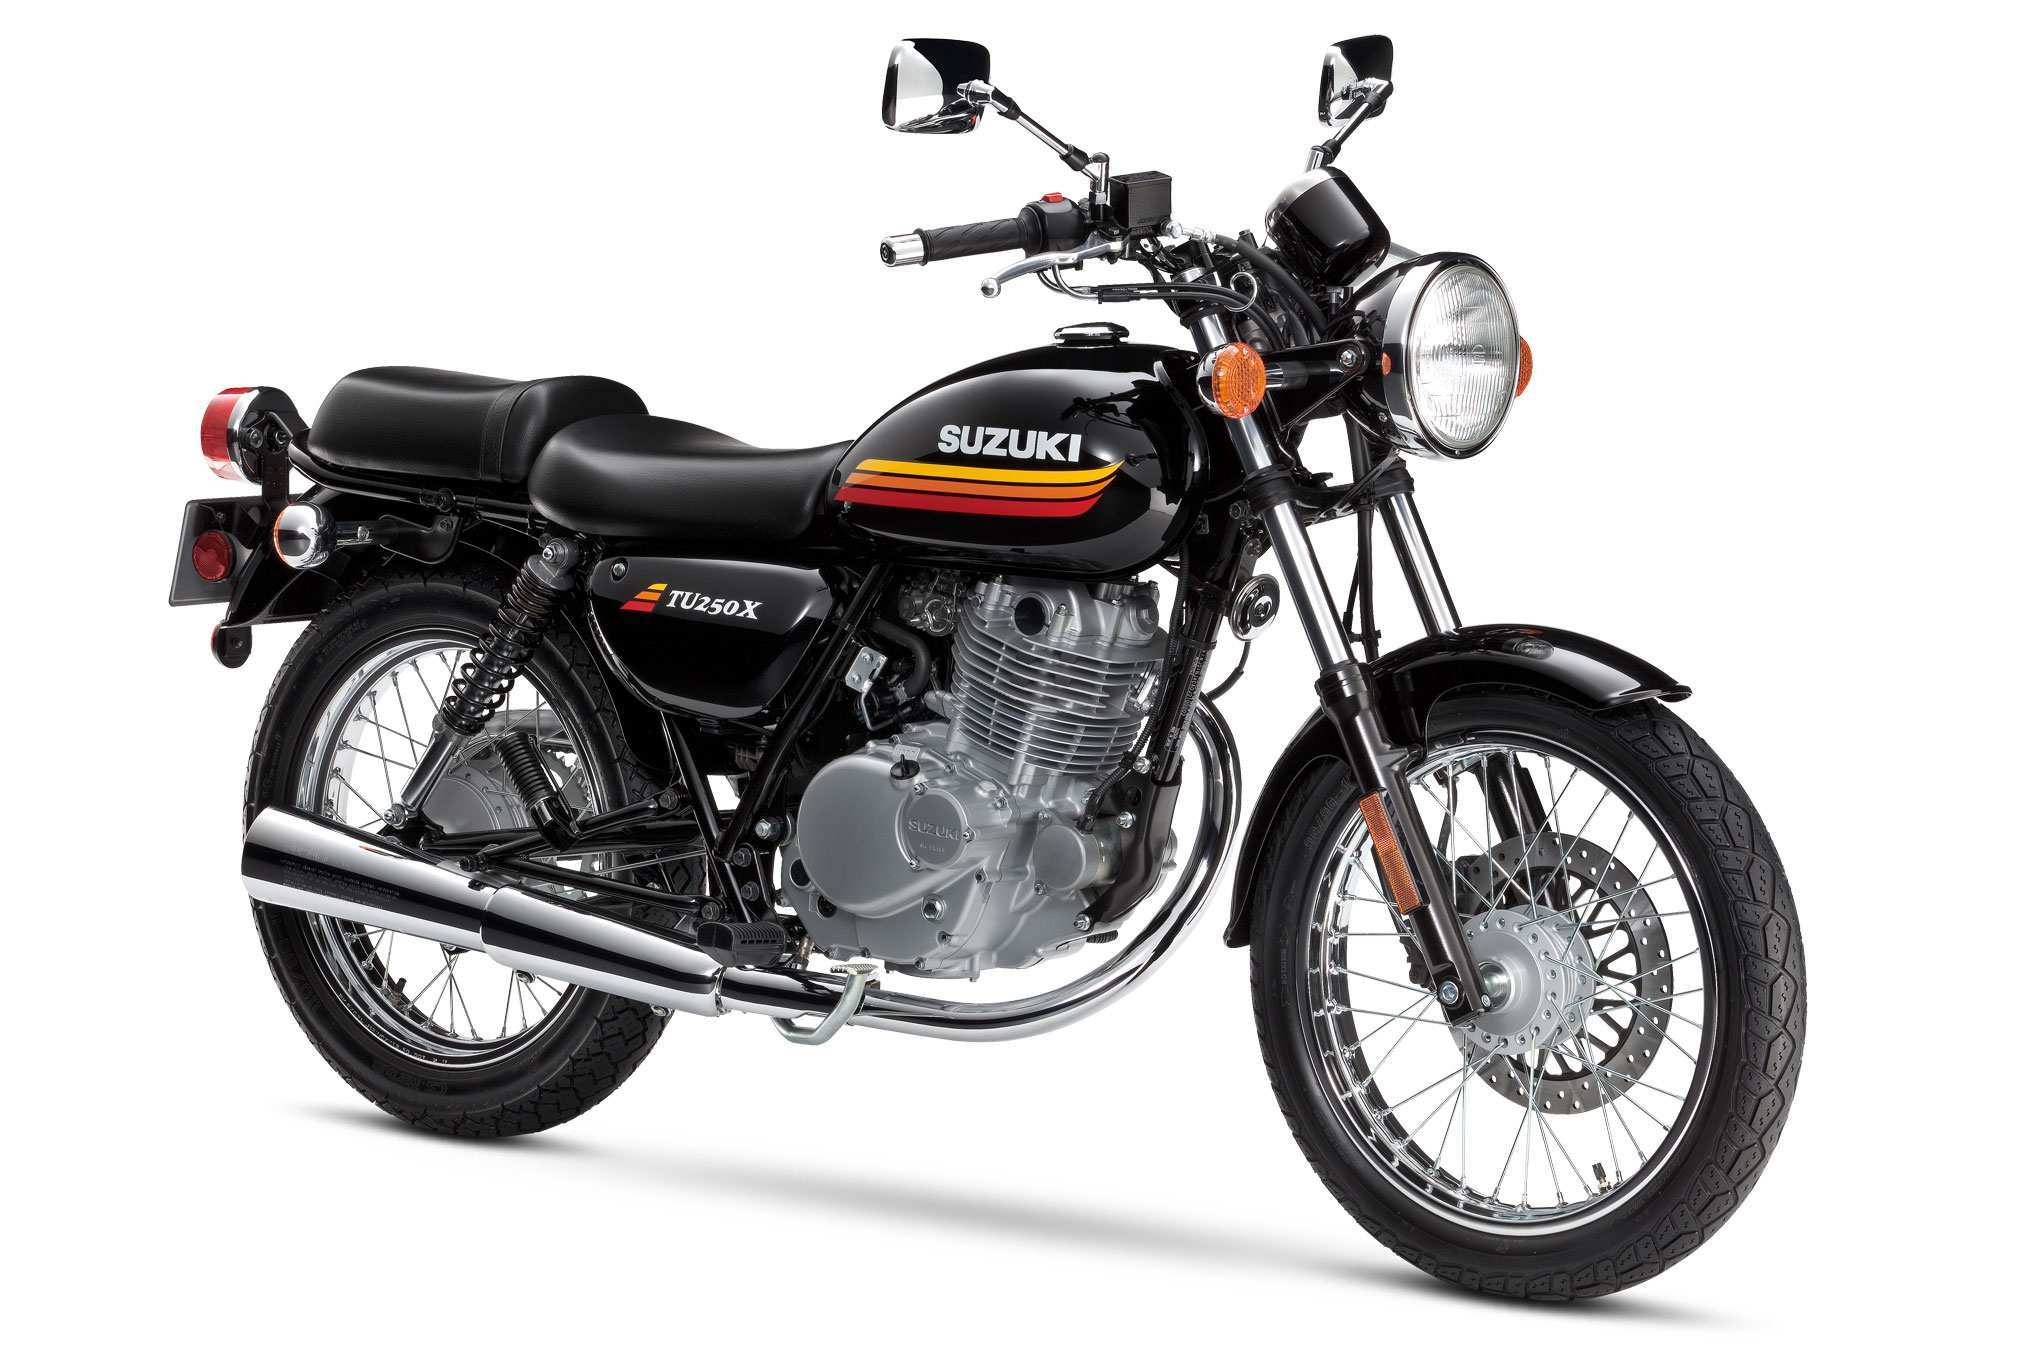 33 All New 2019 Suzuki Tu250X Prices